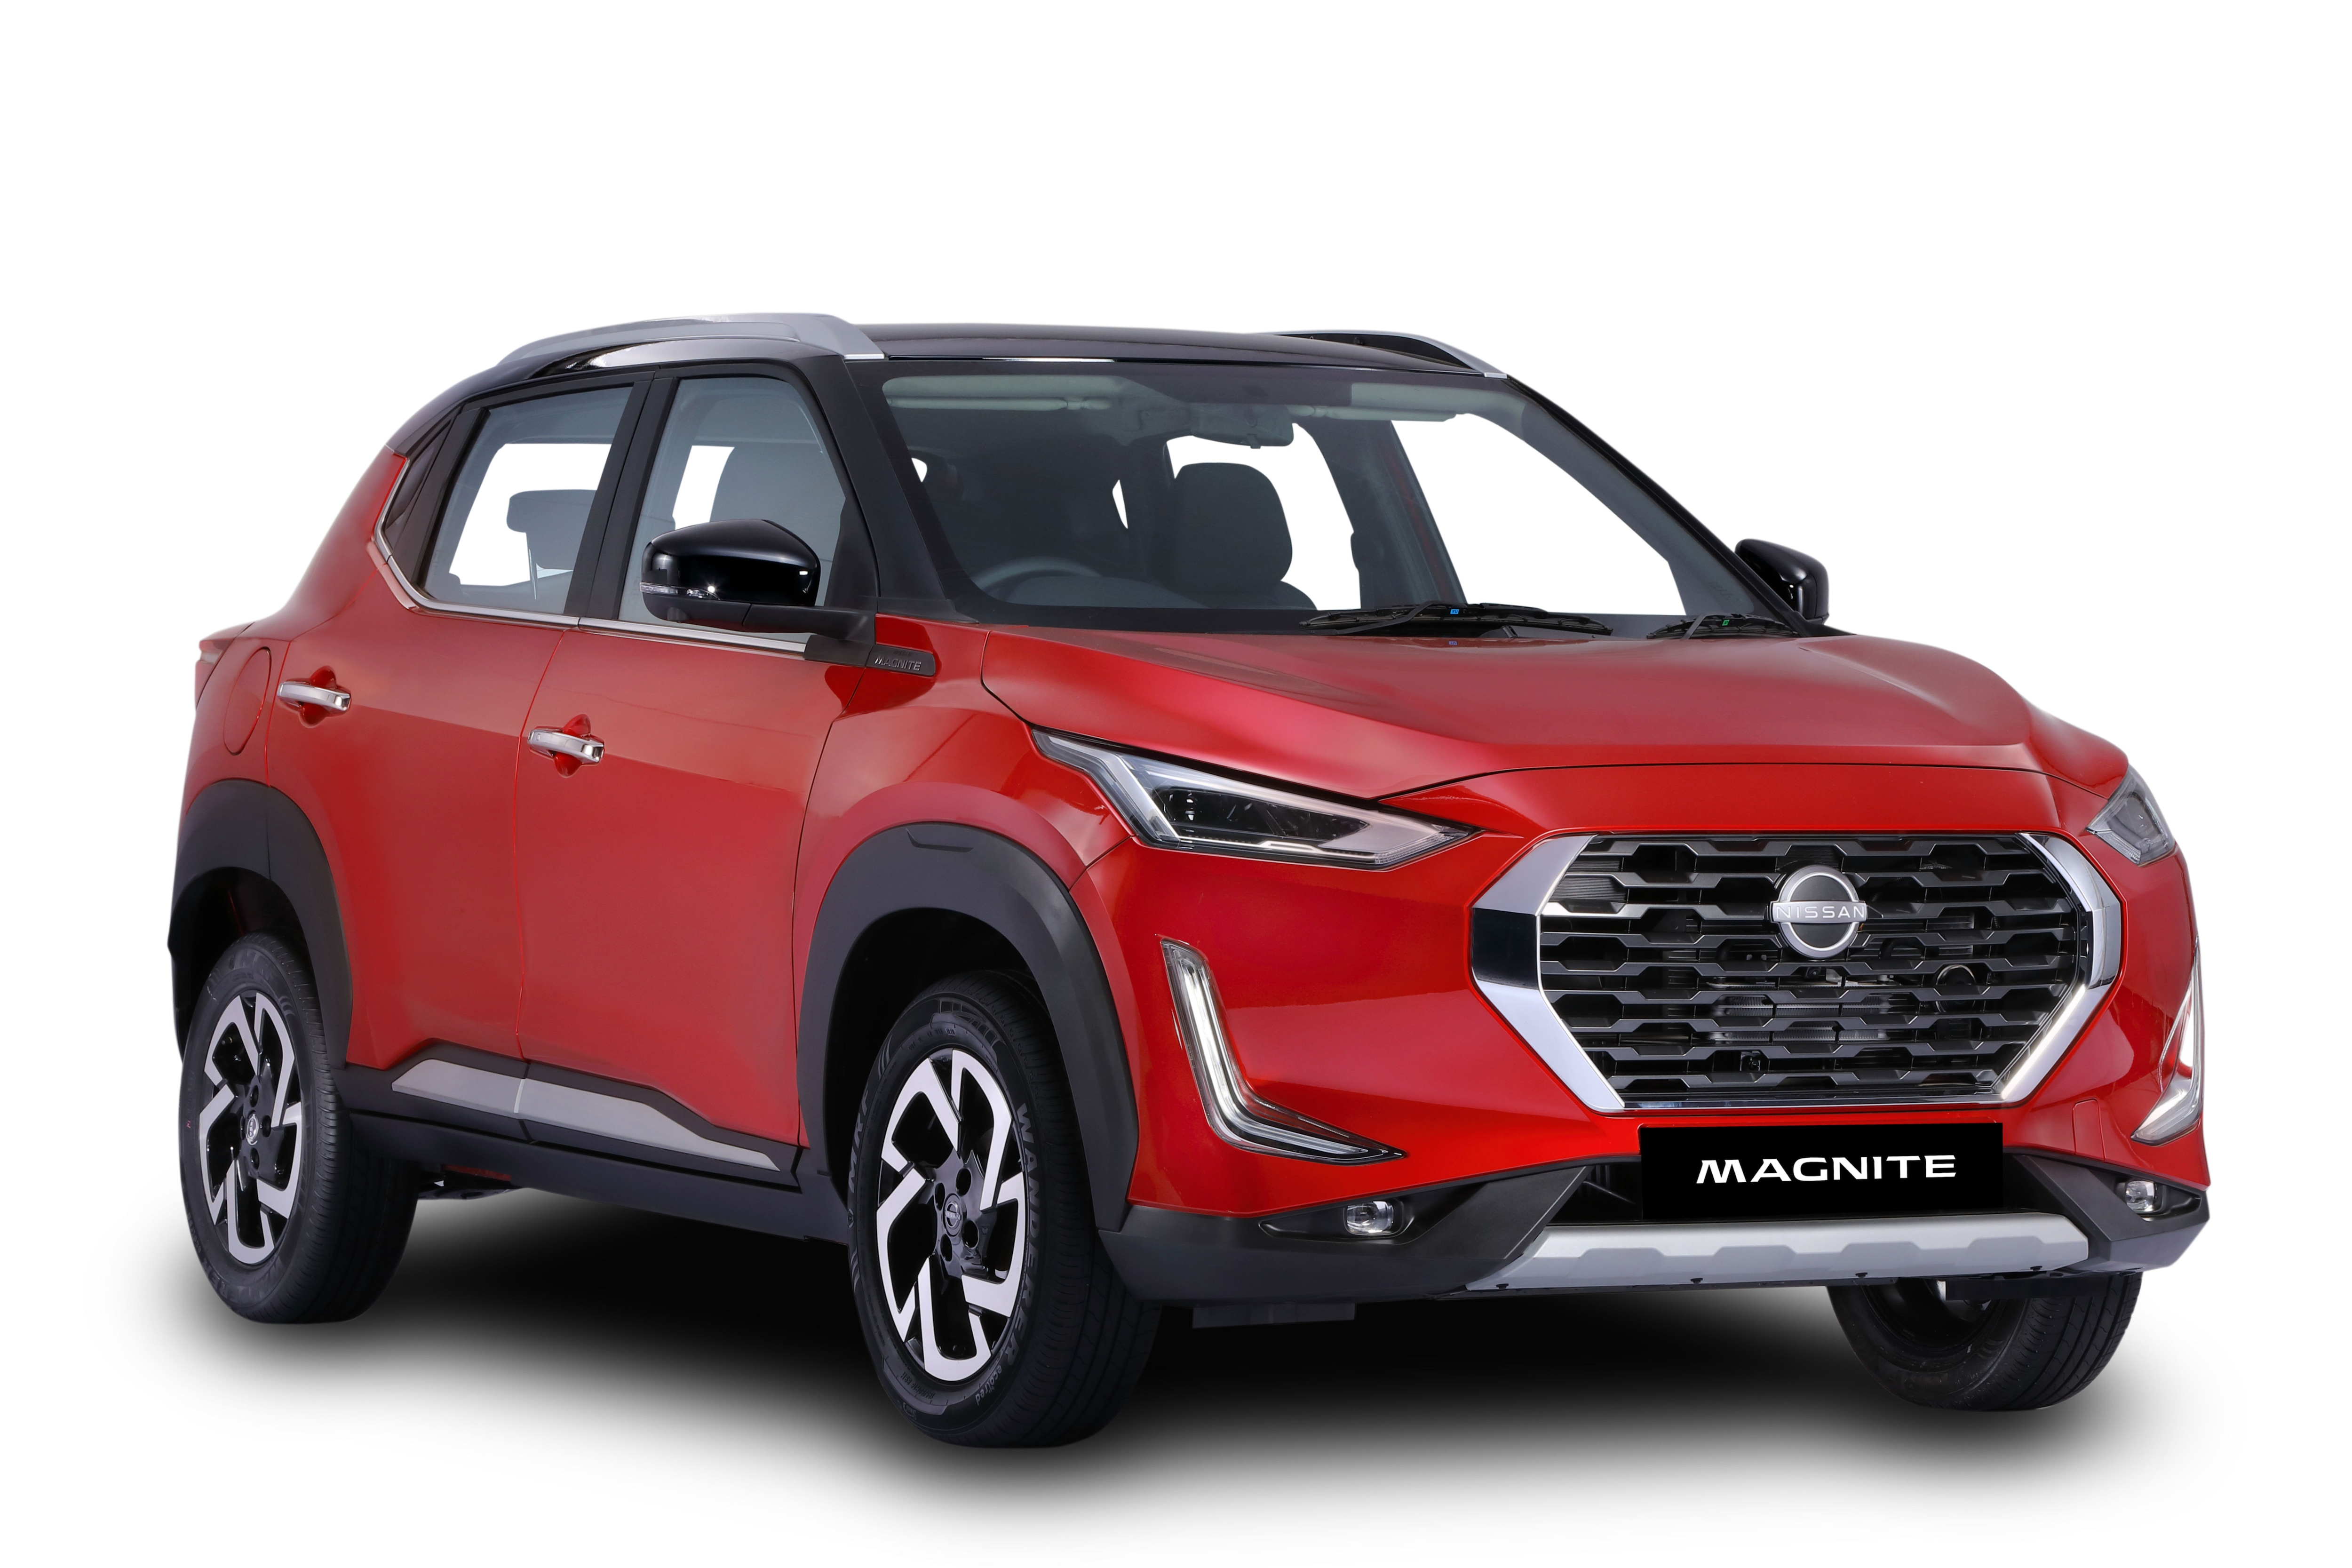 Magnite's front grille is similar to the ones seen on some of the Datsun cars. It gets chrome outline on the side and at its bottom. There is a silver skid plate on the front bumper which seeks to lend the vehicle its SUV credentials.